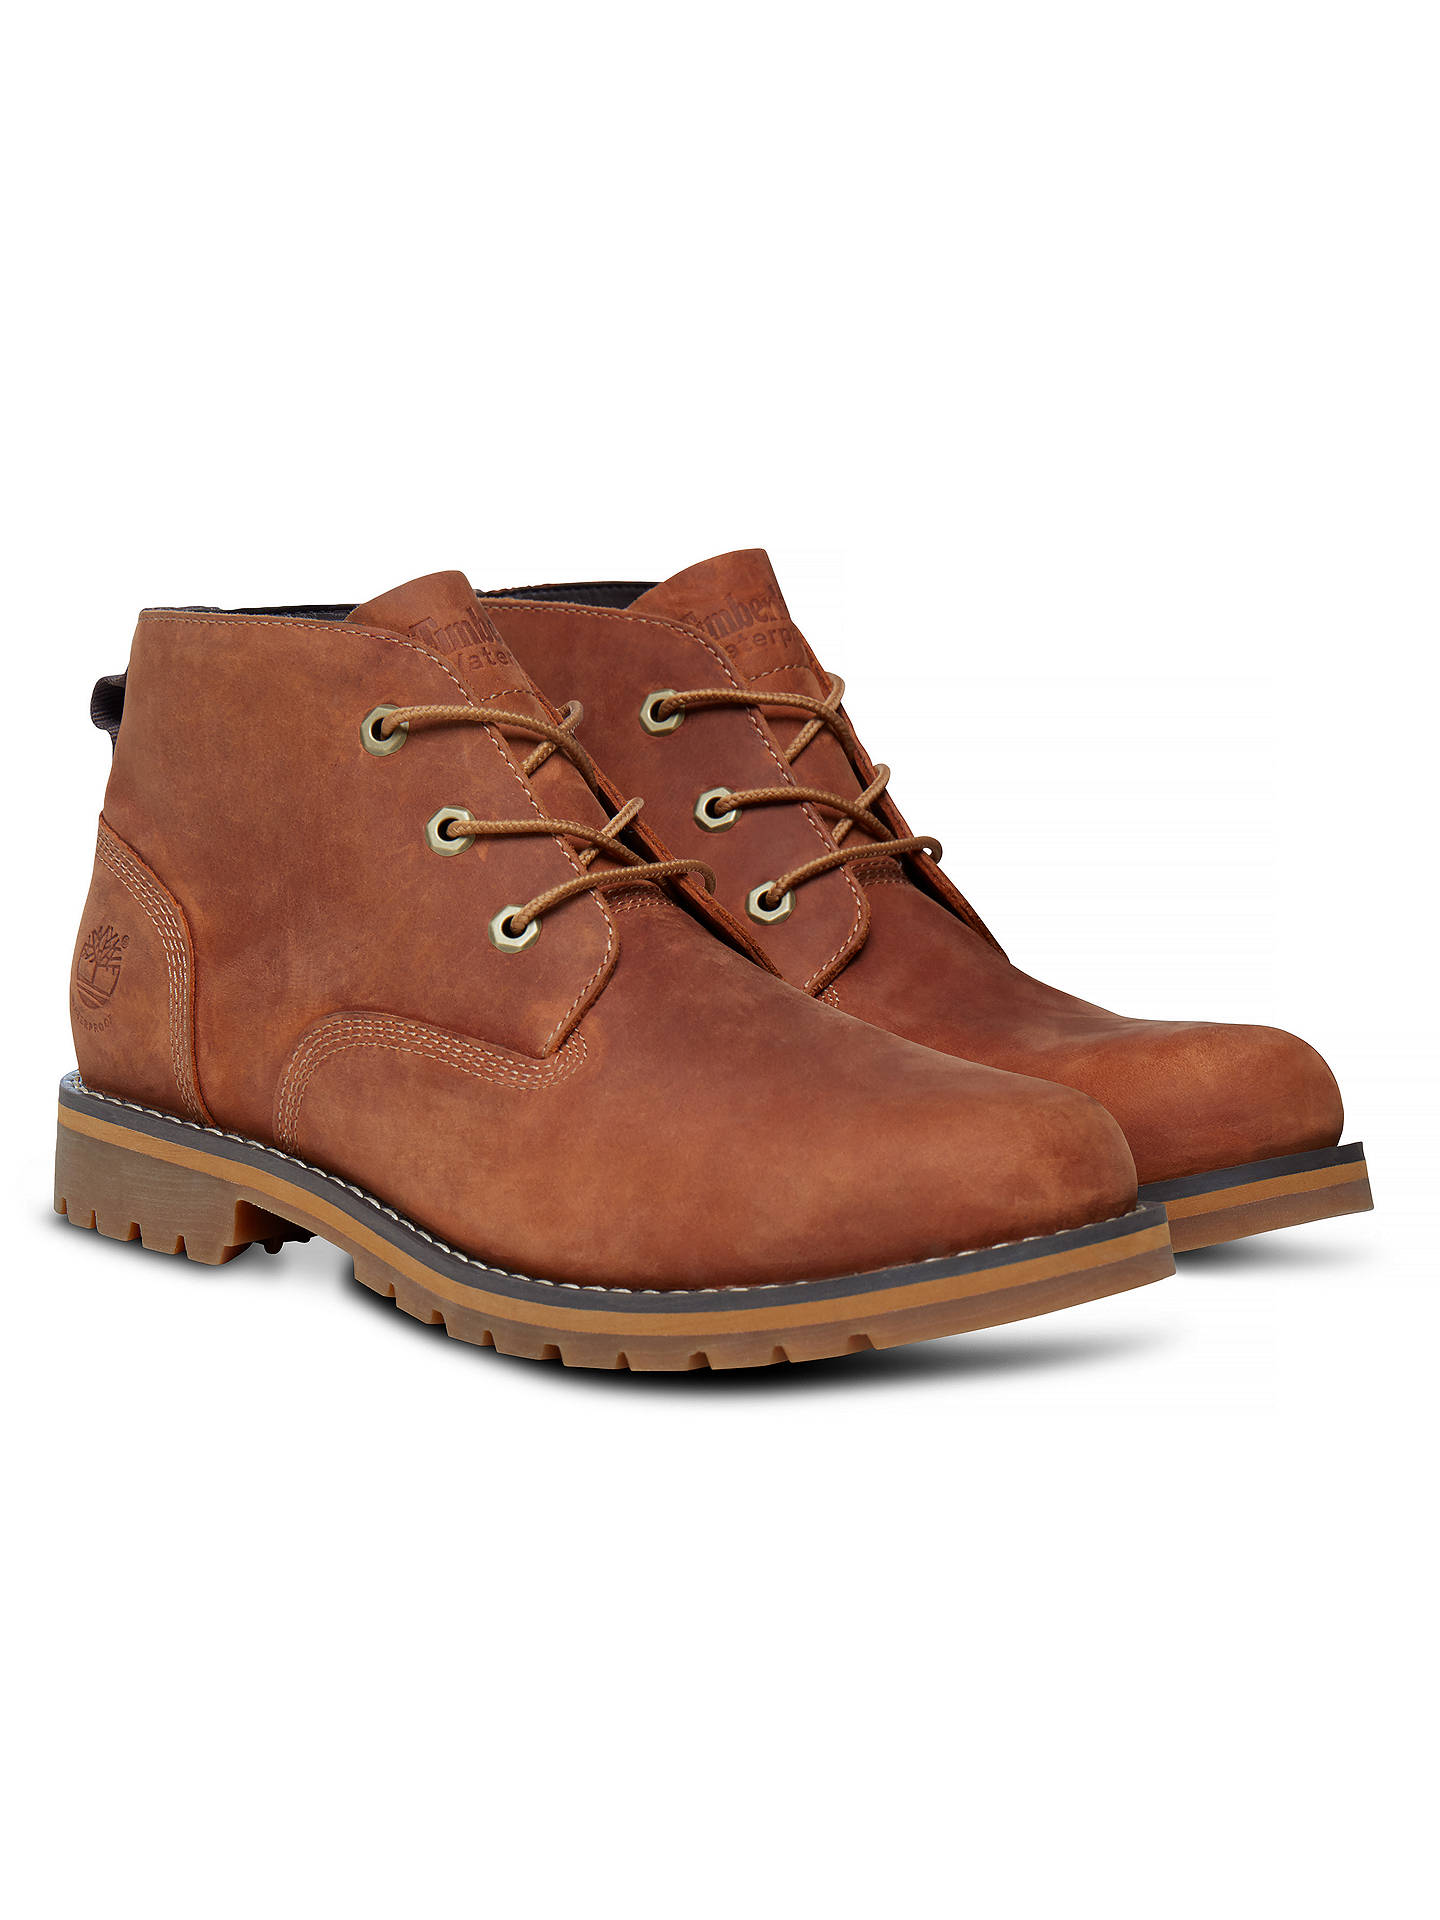 9b38dfdc14d Timberland Larchmont Waterproof Chukka Boots, Brown at John Lewis ...